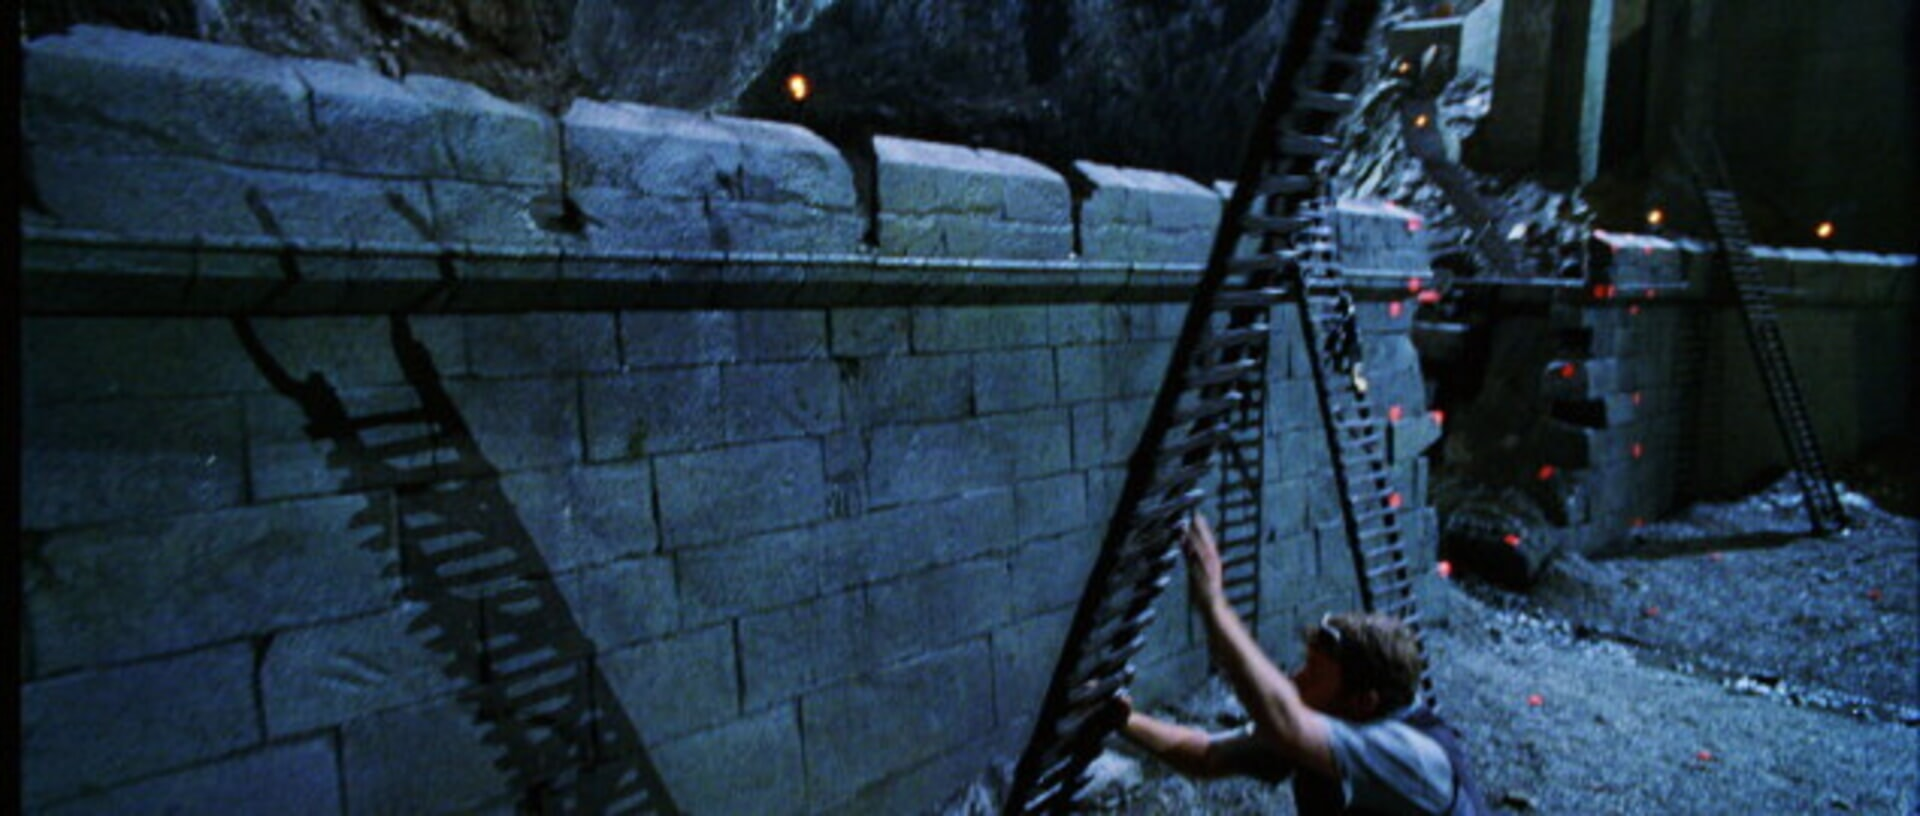 The Lord of the Rings: The Two Towers - Image 61